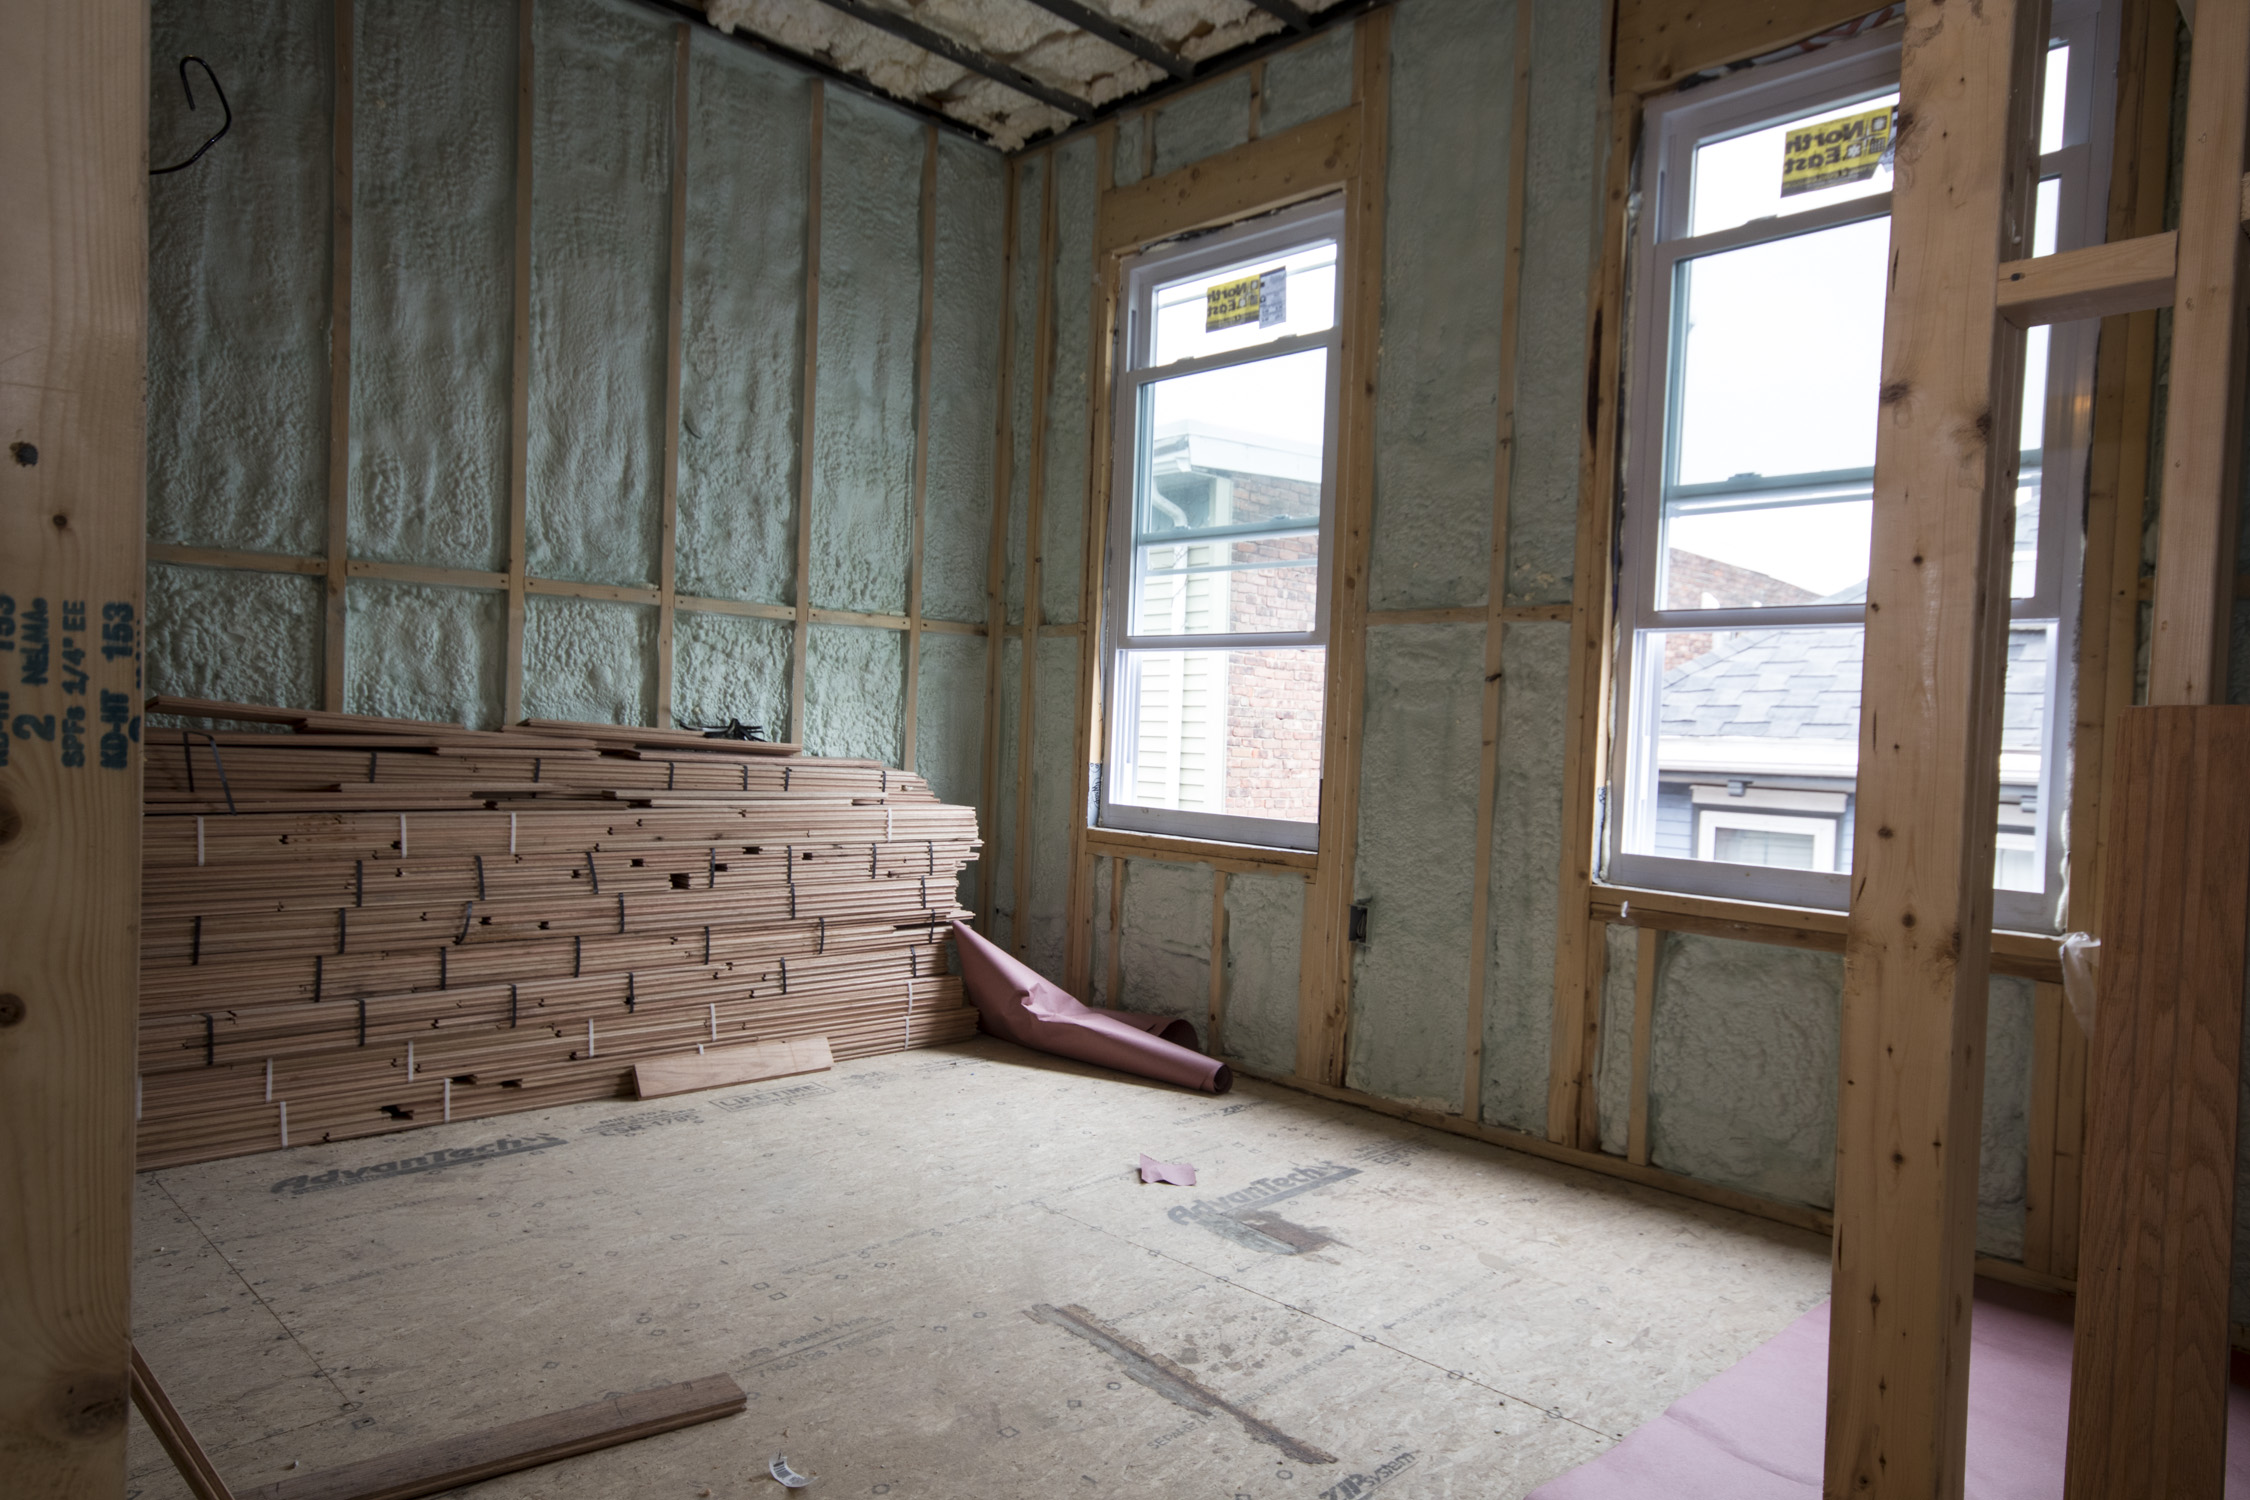 83 parker street home renovation boston general contractor_52